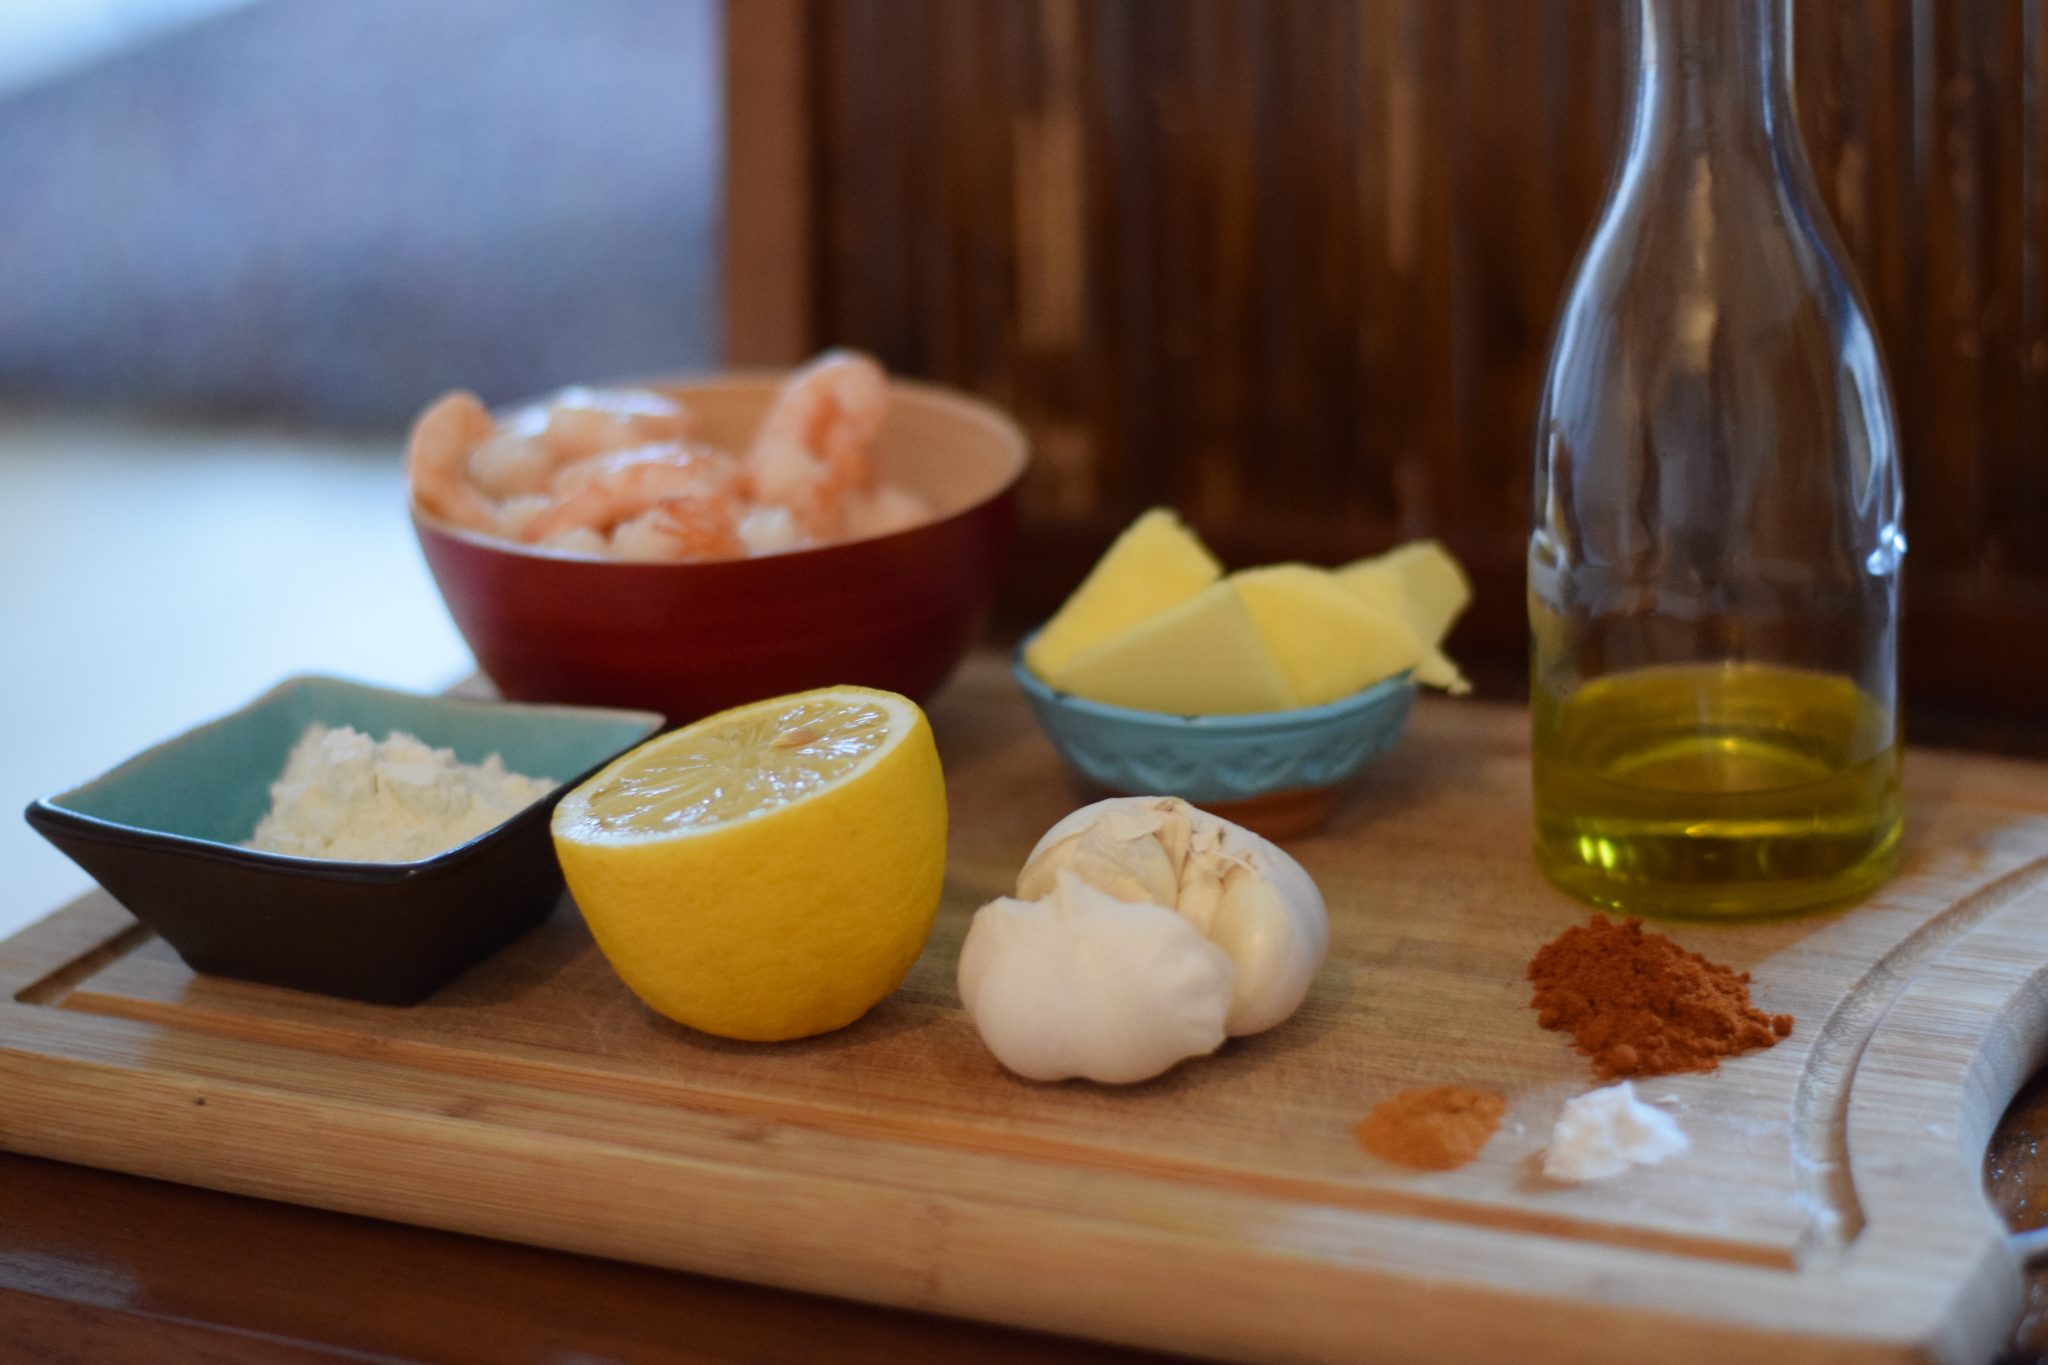 Recept voor Hawaiiaanse garlic shrimps